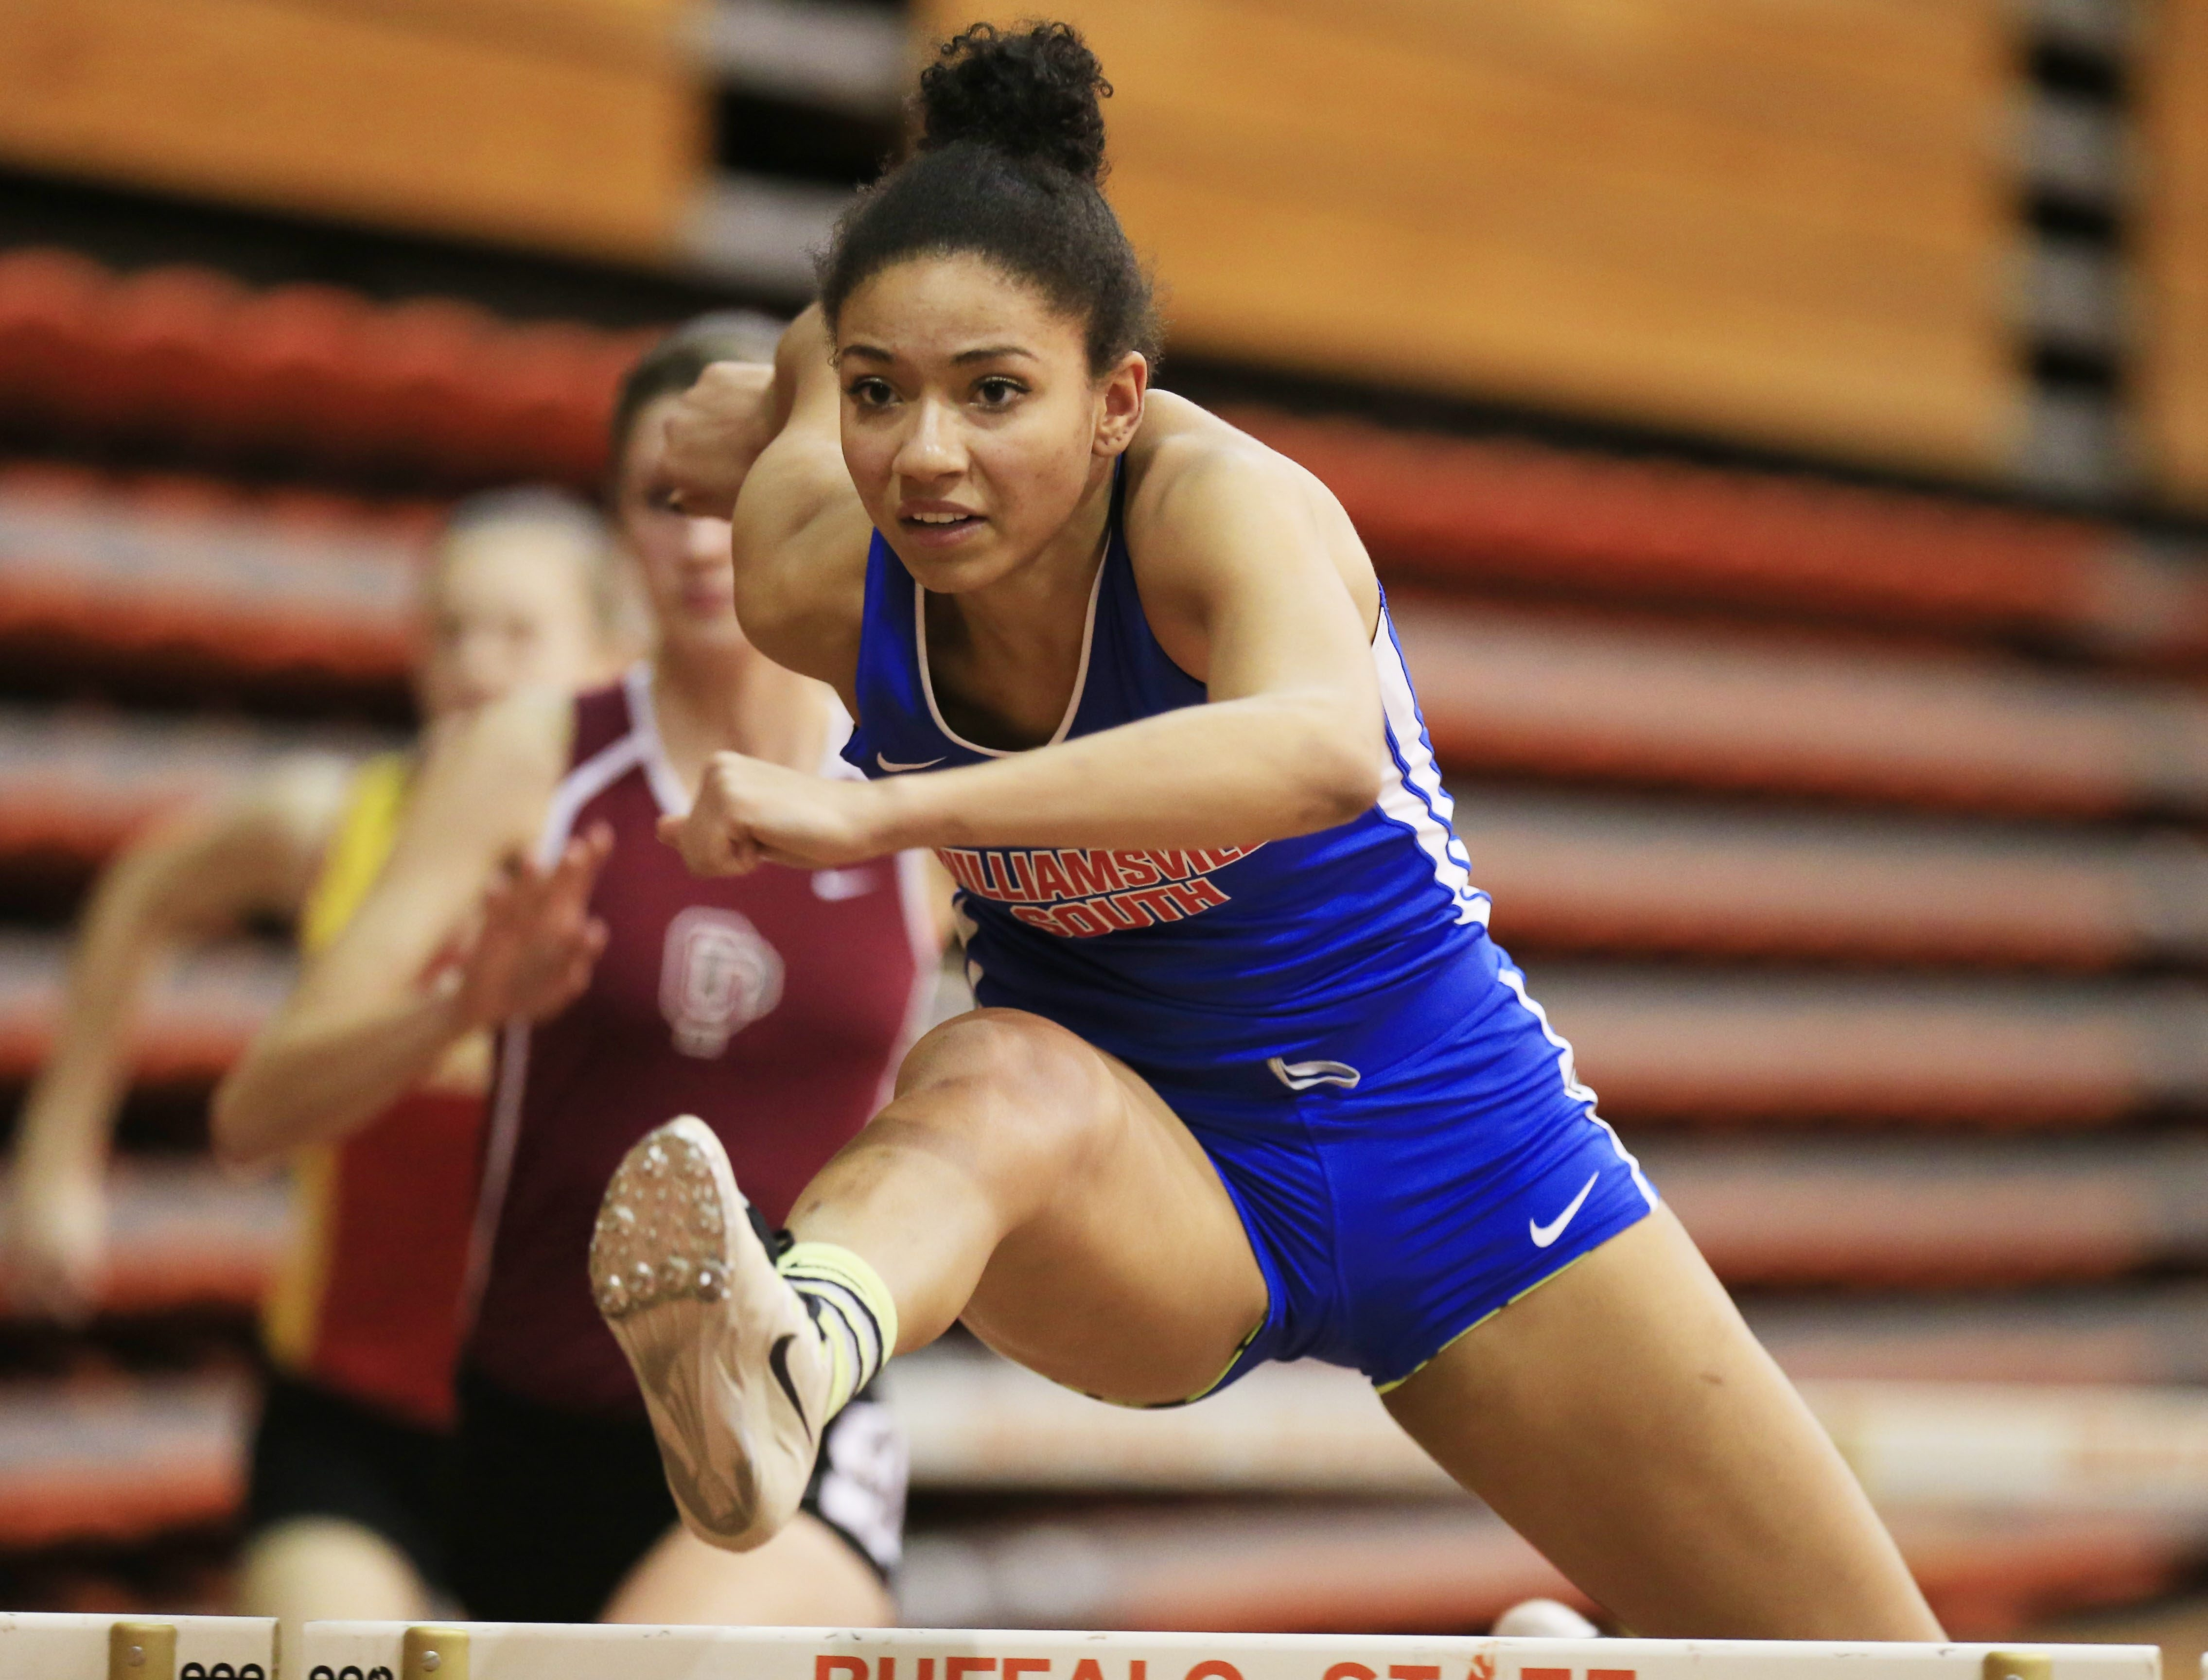 Alyssa Oviasogie of  Williamsville South went to states in the 55 hurdles and triple jump last season.